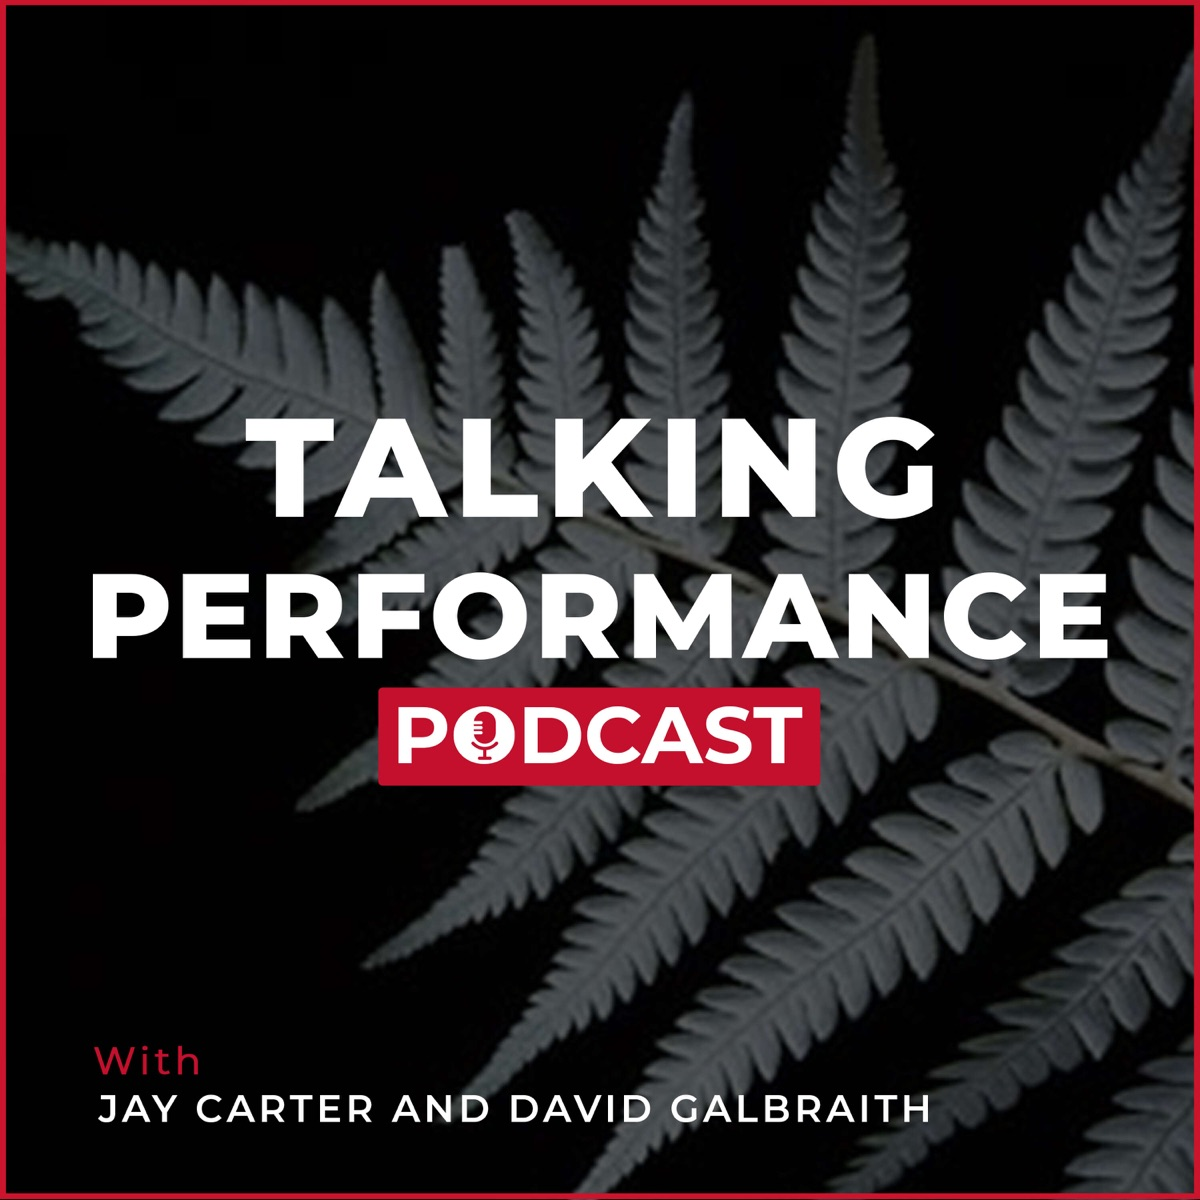 Talking Performance Episode 30 Reflecting on the Panel Discussion